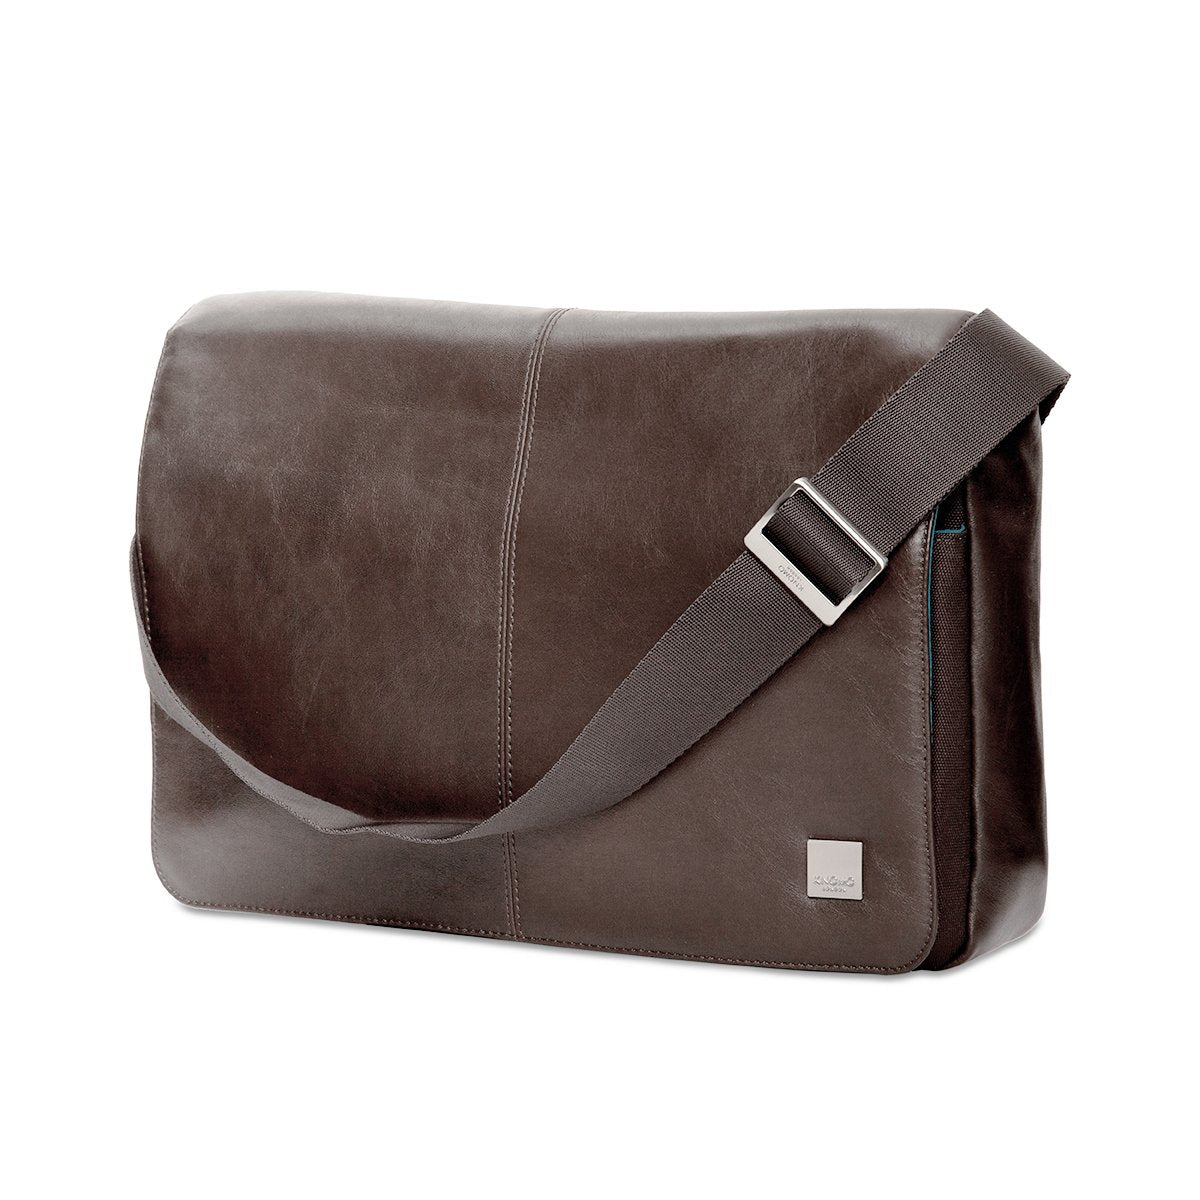 "KNOMO Kinsale Laptop Messenger Bag Three Quarter View With Strap 13"" -  Brown 